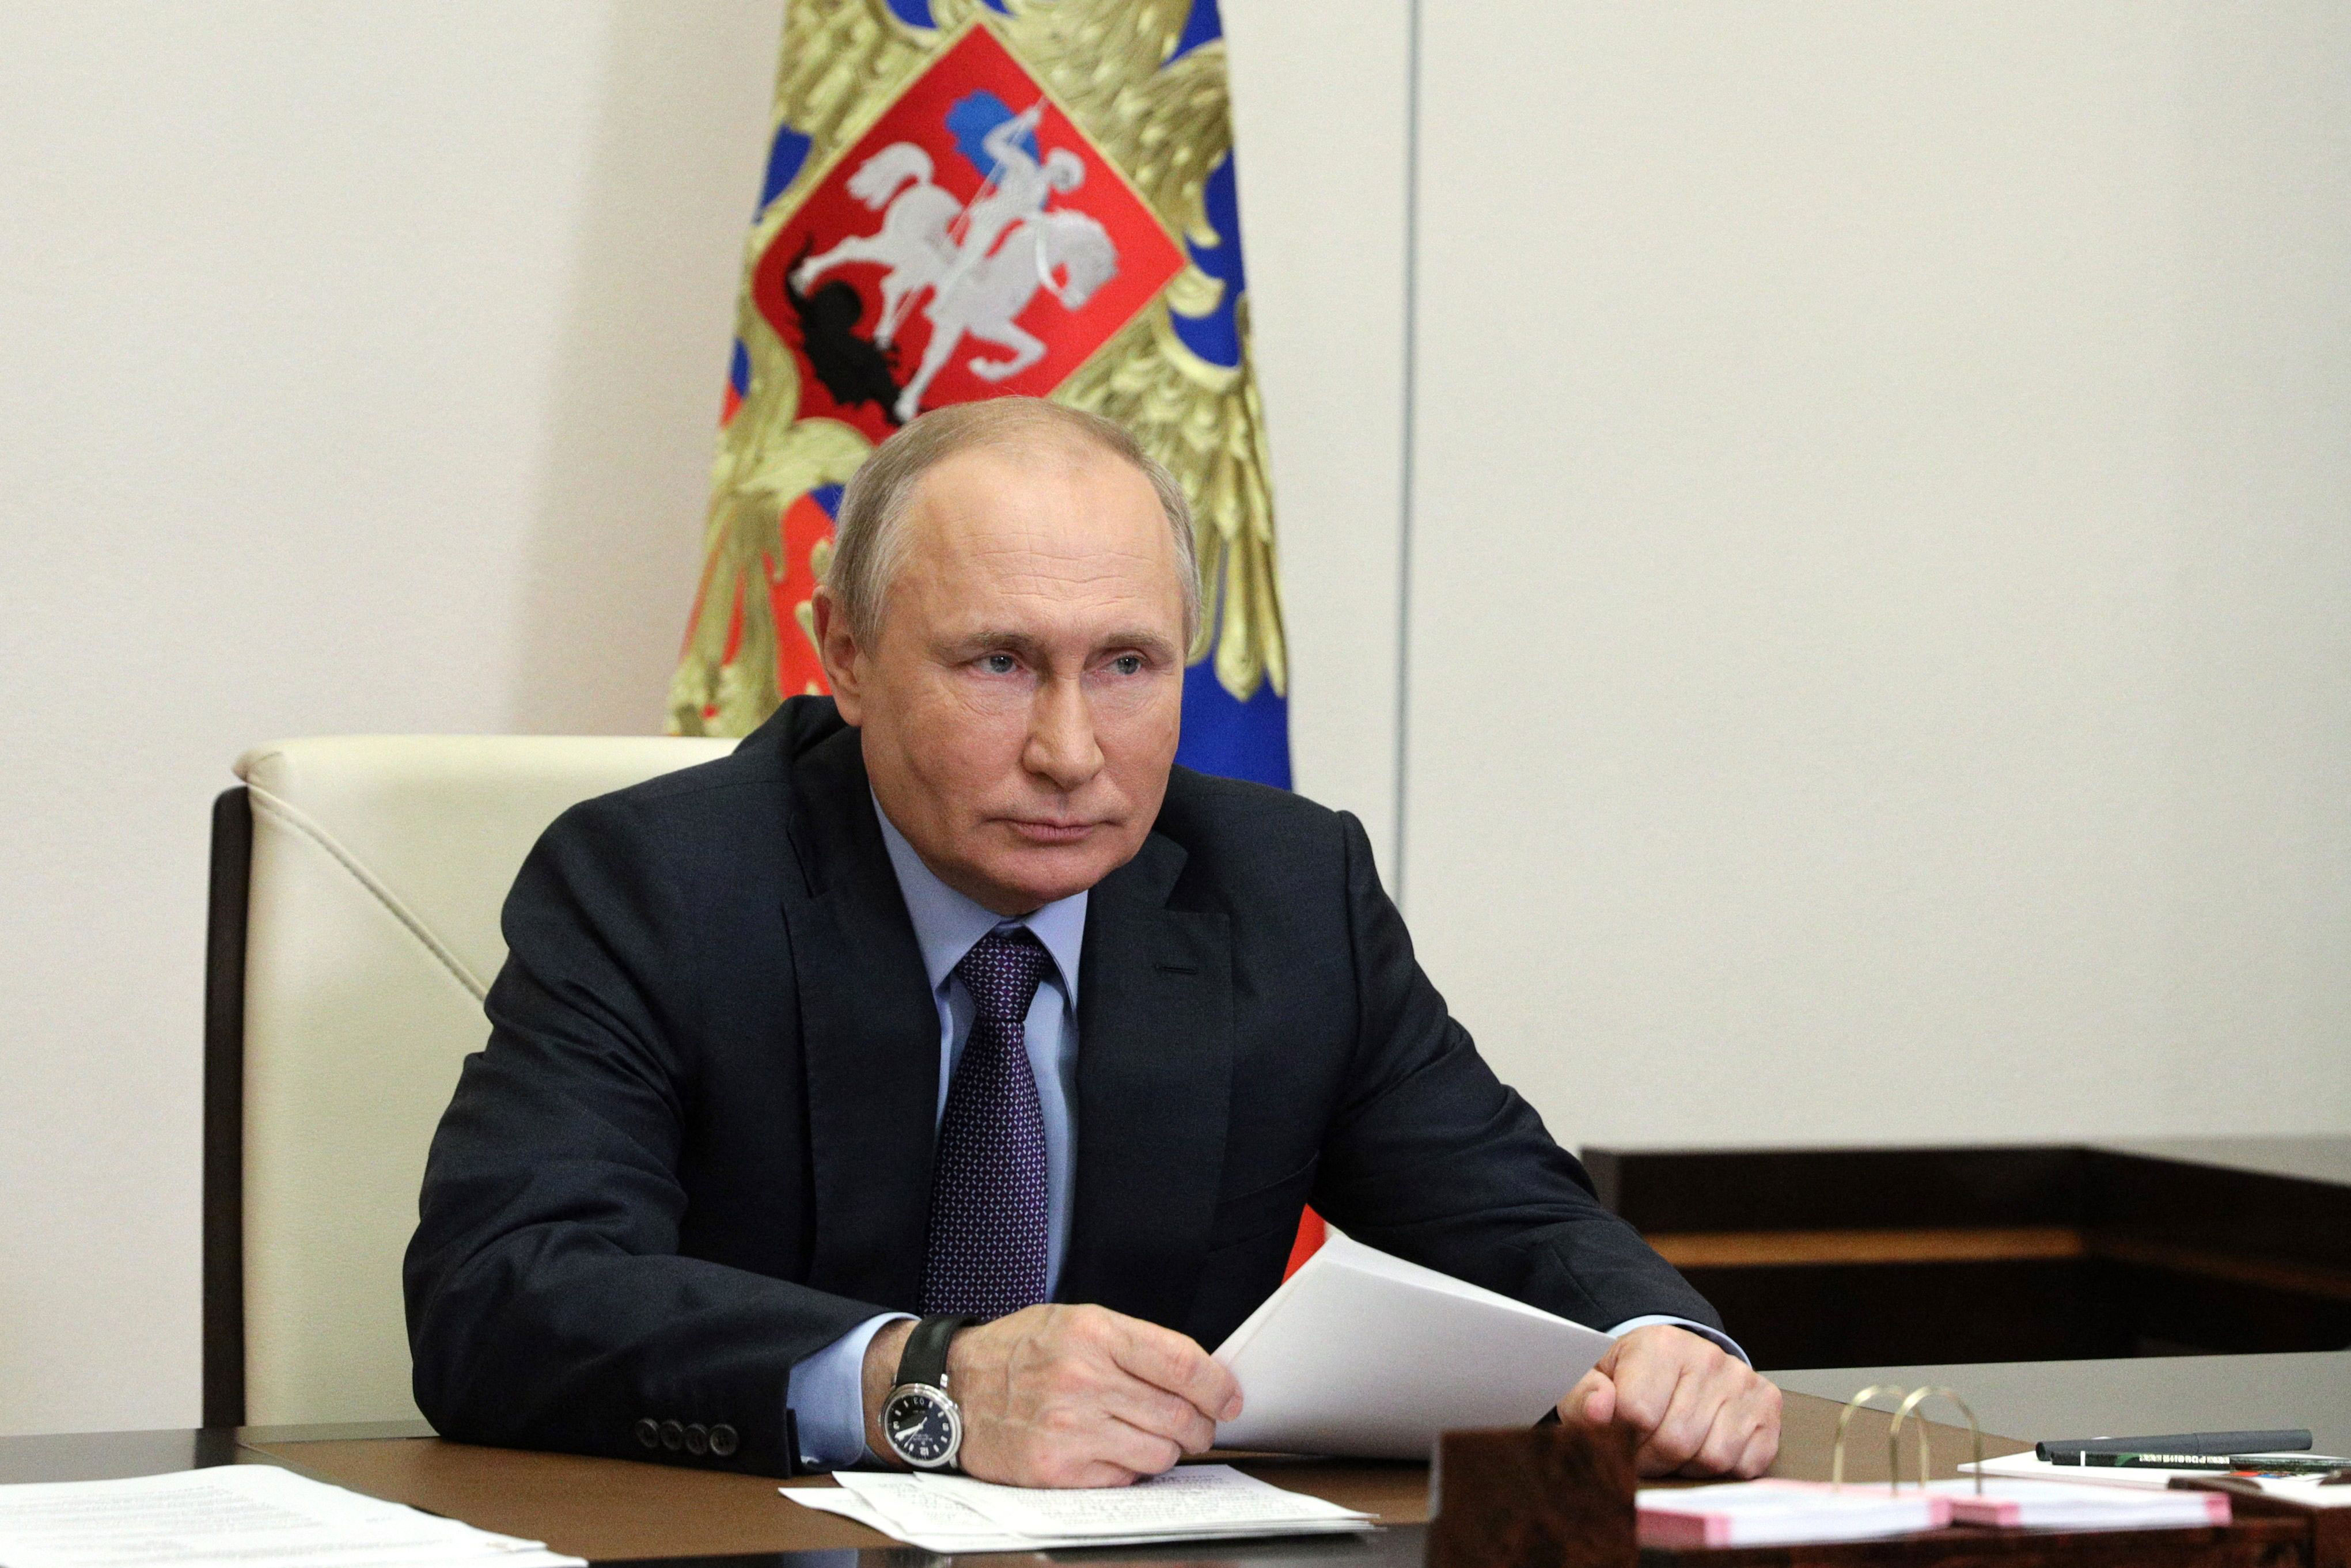 Russian President Vladimir Putin attends an event via video at the Novo-Ogaryovo state residence, outside Moscow, on June 9.